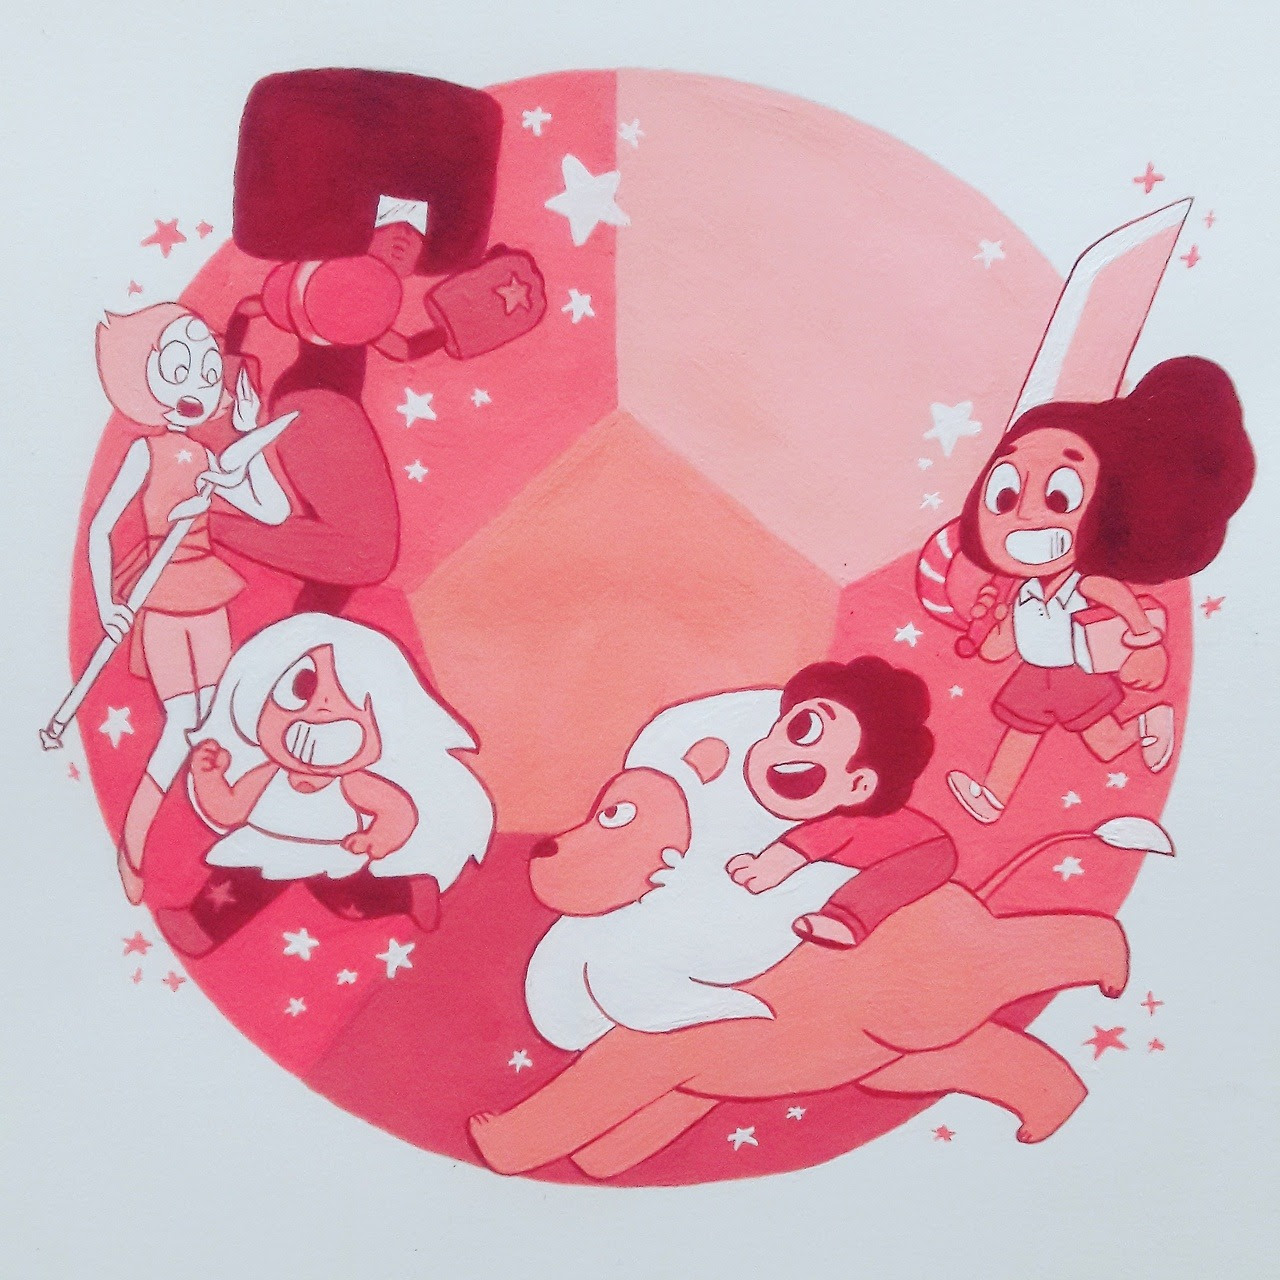 We… are the Crystal- GEMS!